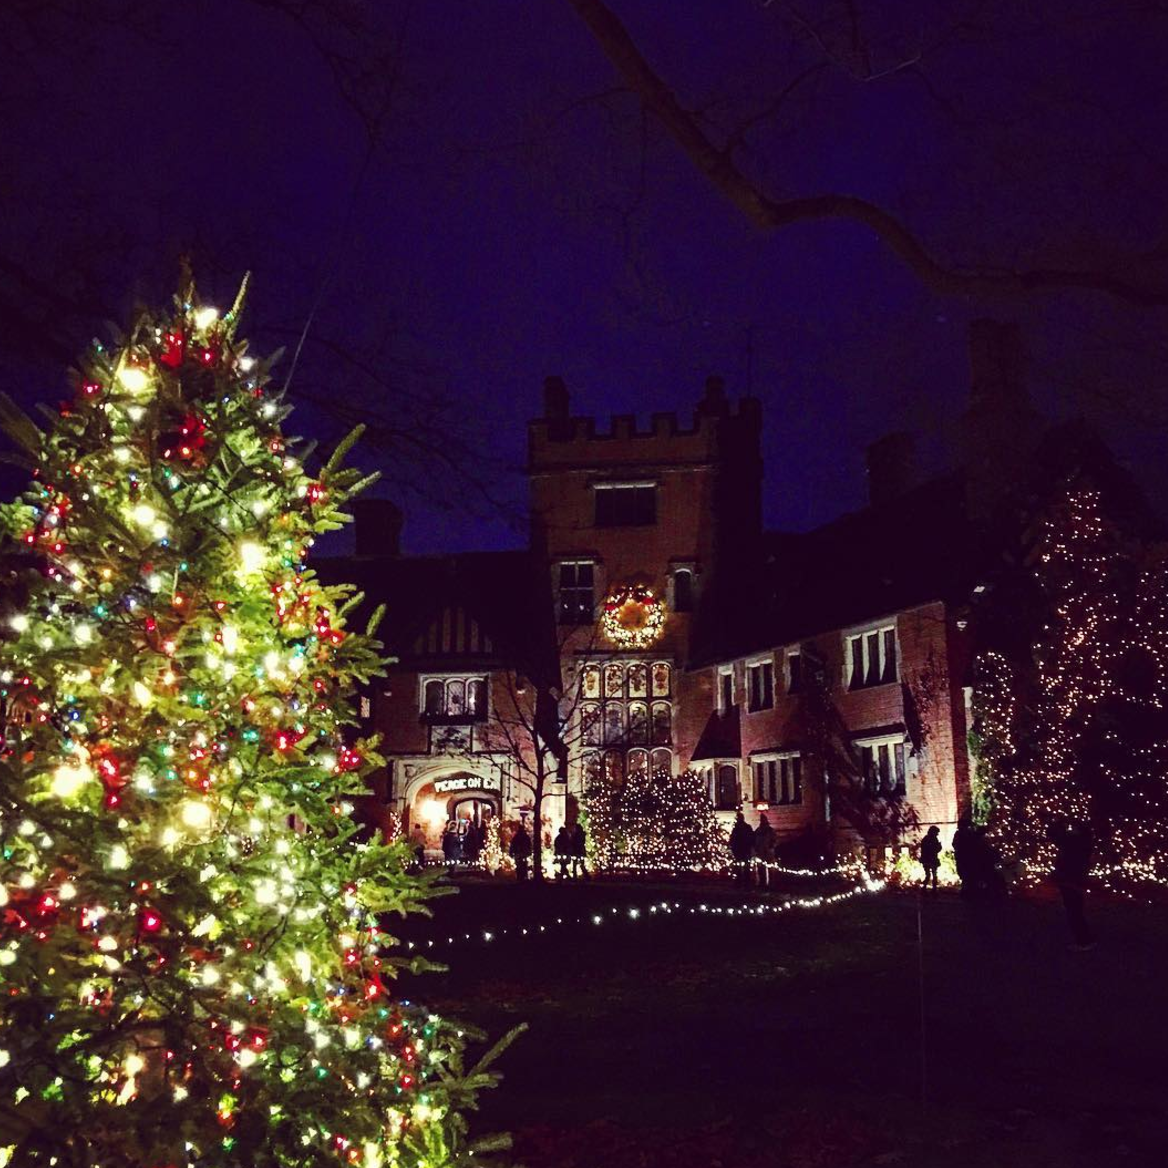 Photo by @megan.conley12 at Deck the Hall at Stan Hywet Hall & Gardens in Akron, Ohio